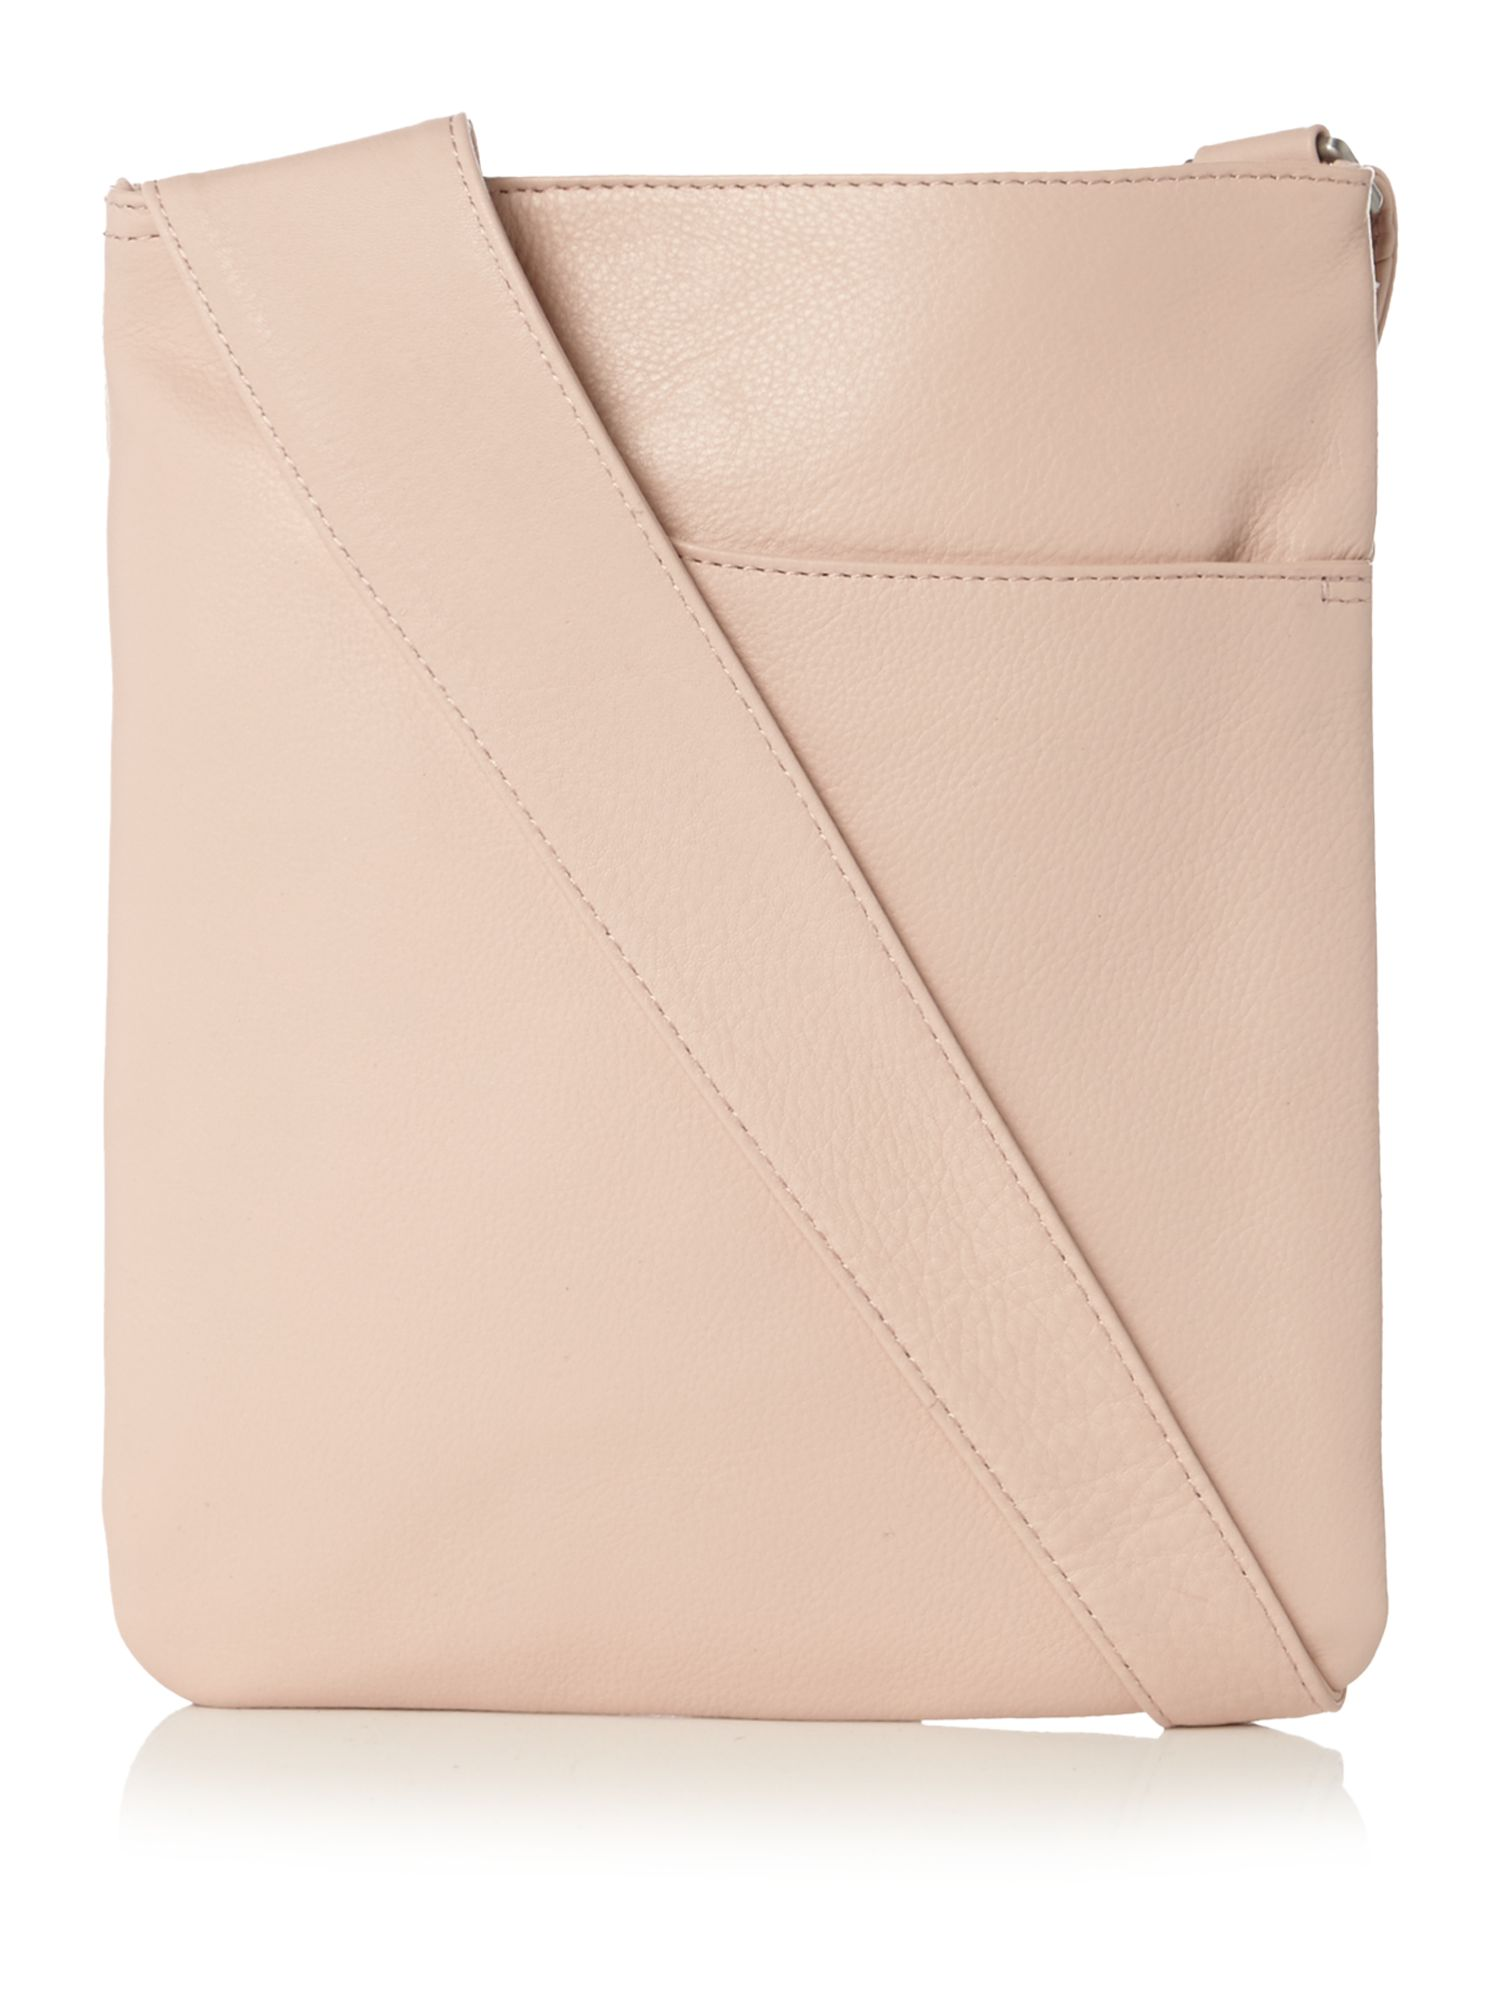 Radley Pocket bag pale pink crossbody bag